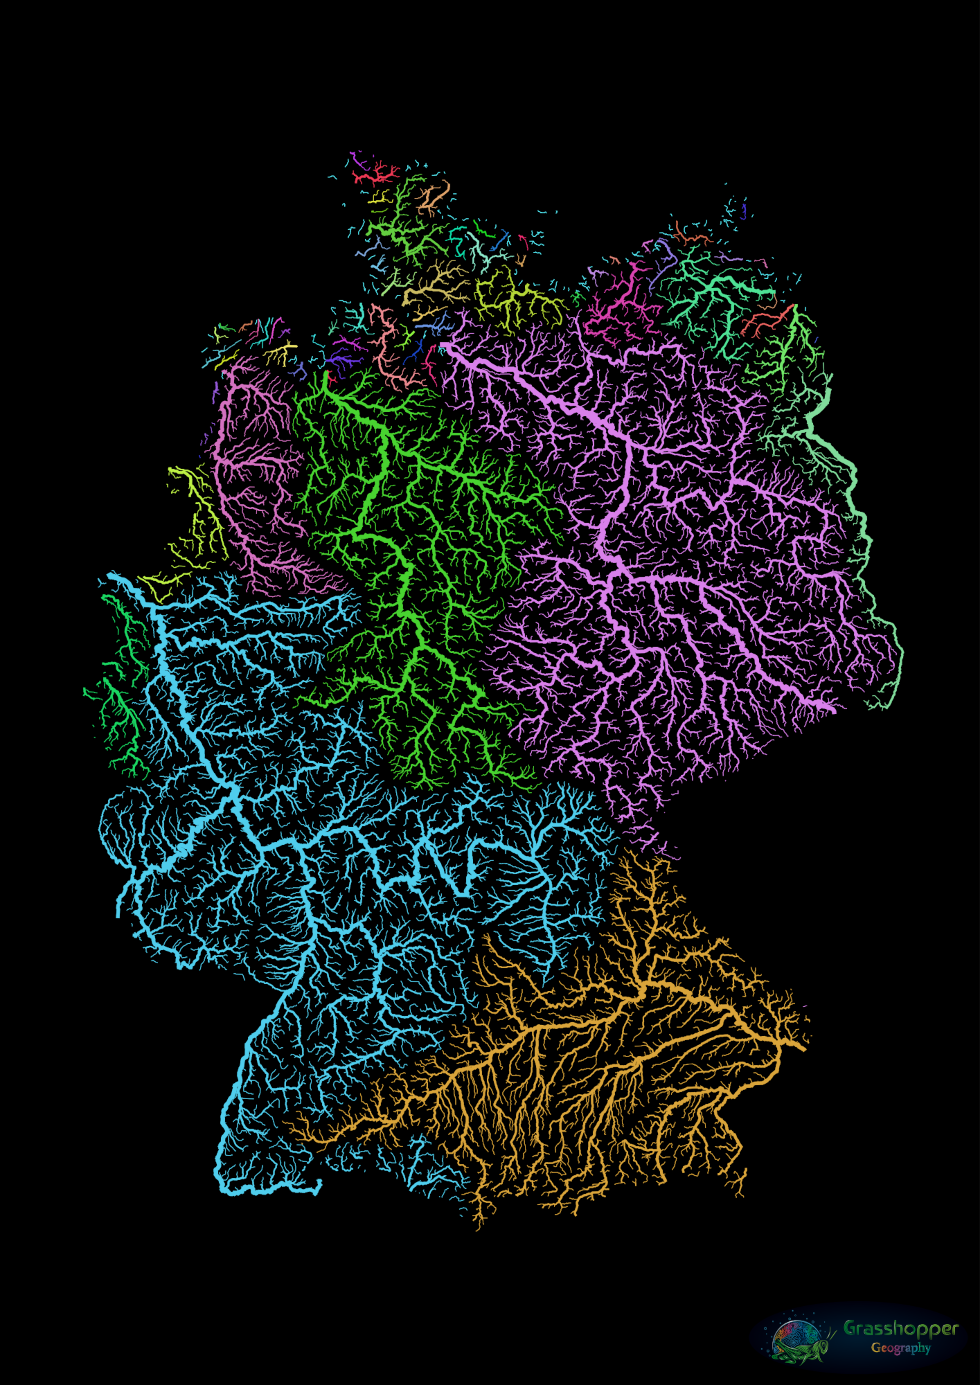 The hydrographic map of Germany is dominated by just four major drainage systems: the Danube (in orange) in the south, the Rhine (in blue) in the west, the Elbe (in purple) in the east and the Weser (in green) between the latter two. In Antiquity, the Rhine was the border between the Roman Empire and the Germans. Rome once attempted to shift the border to the Elbe, which would have radically altered the course of history, but it suffered a massive defeat in 9 CE at the Teutoburger Wald (roughly between both rivers). Image: Grasshopper Geography